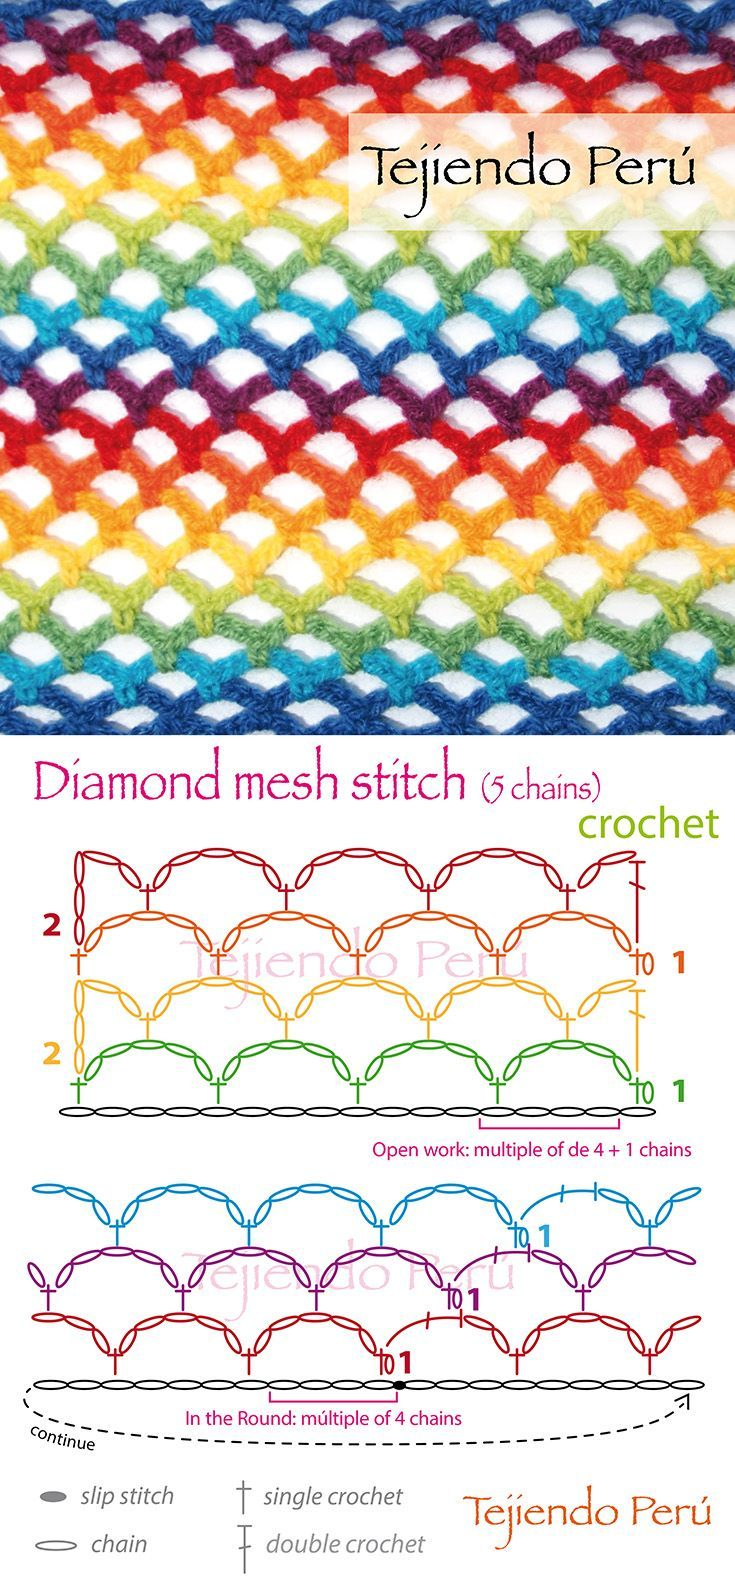 Diamond mesh stitch...